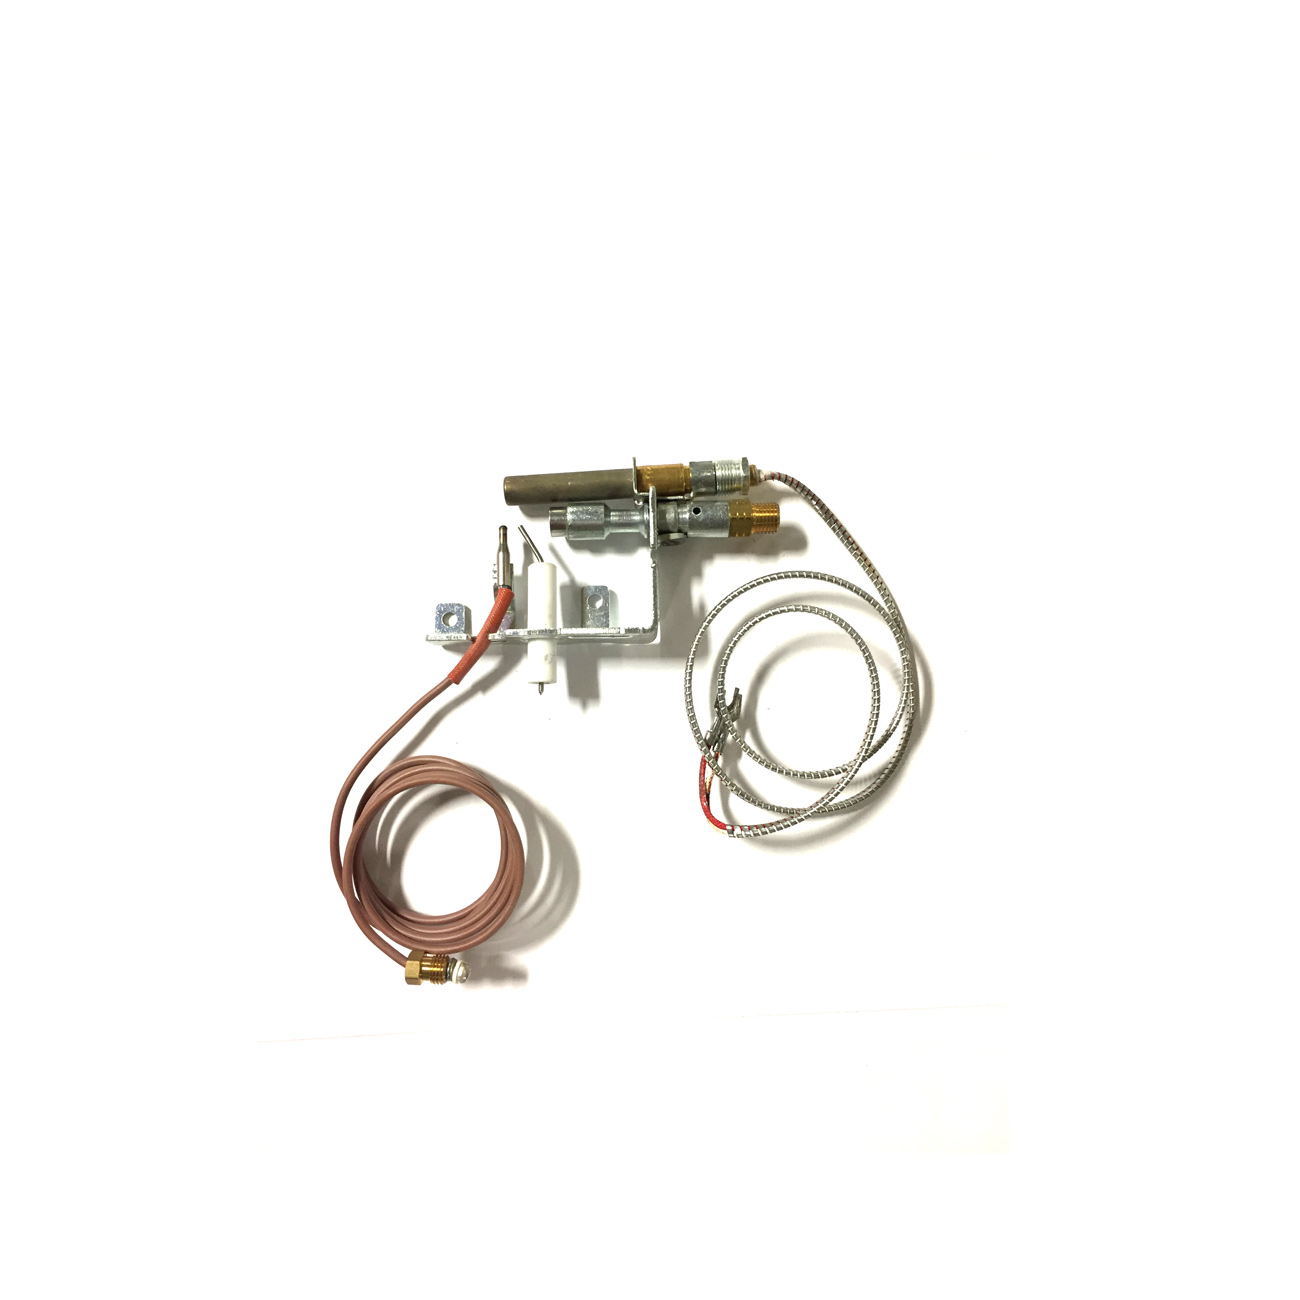 Parts Procom Heating Ods Pilot Wiring Diagram Assembly Part Ng8214